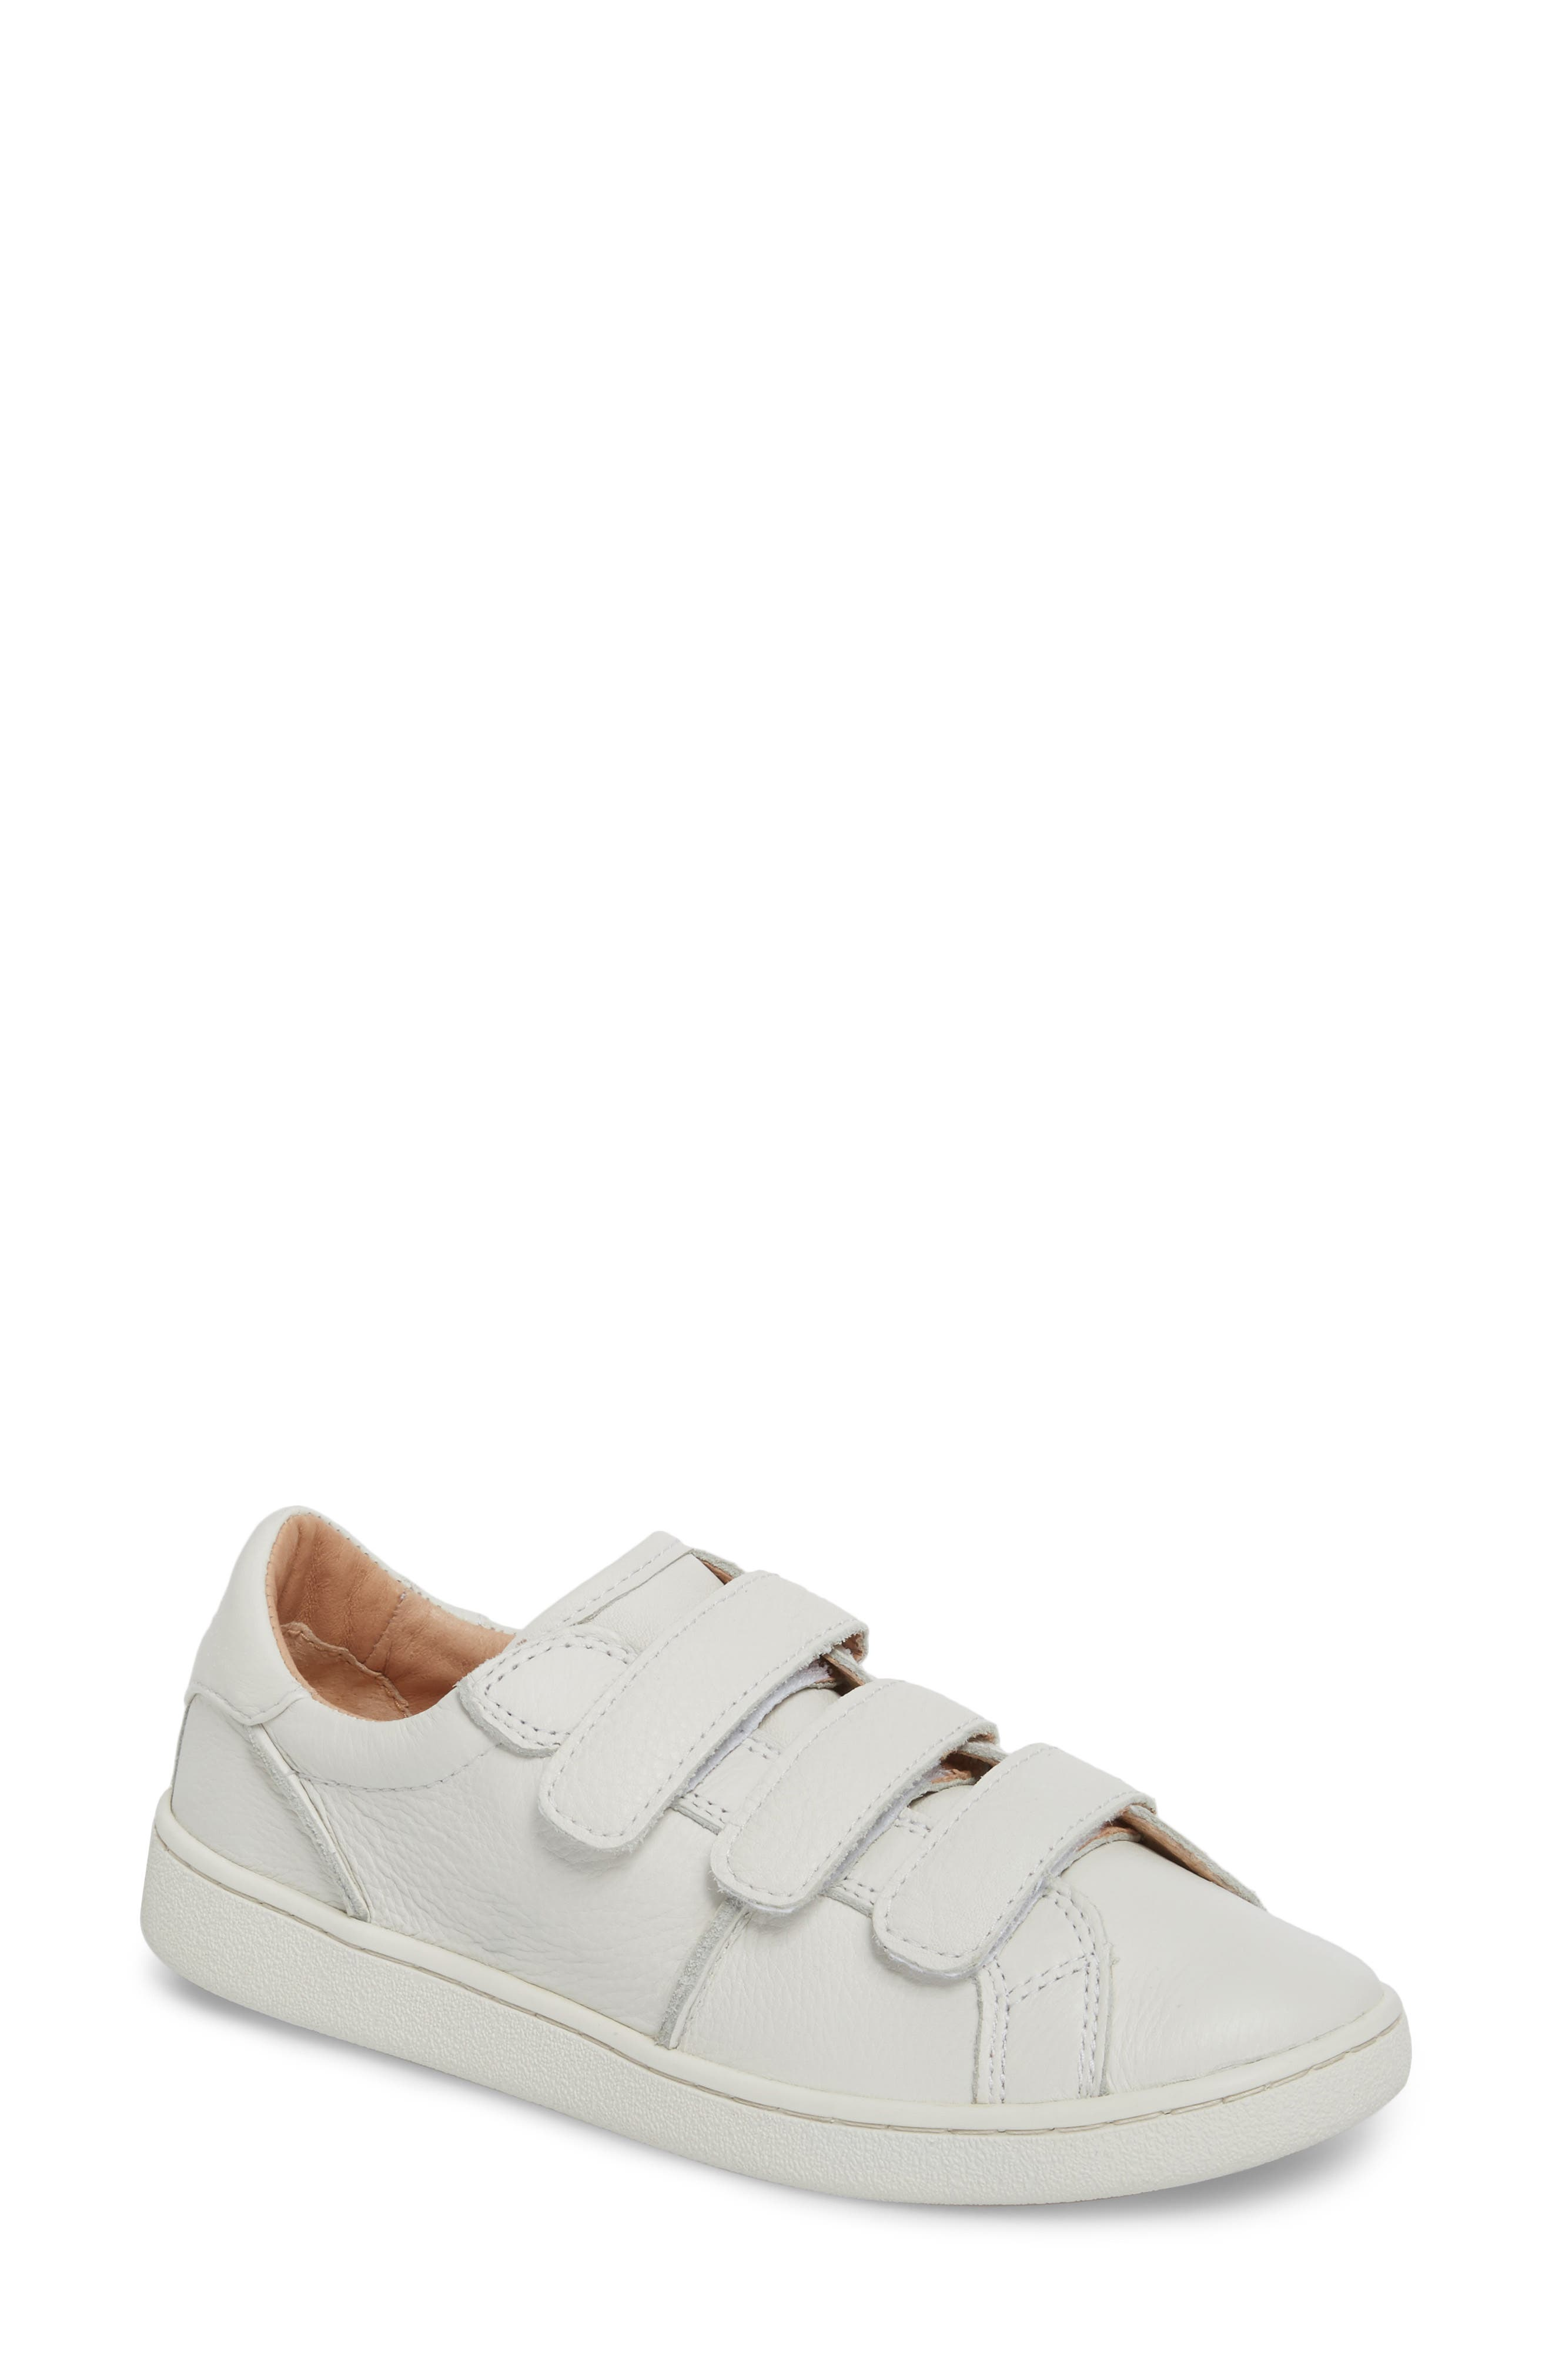 Alix Sneaker,                         Main,                         color, White Leather